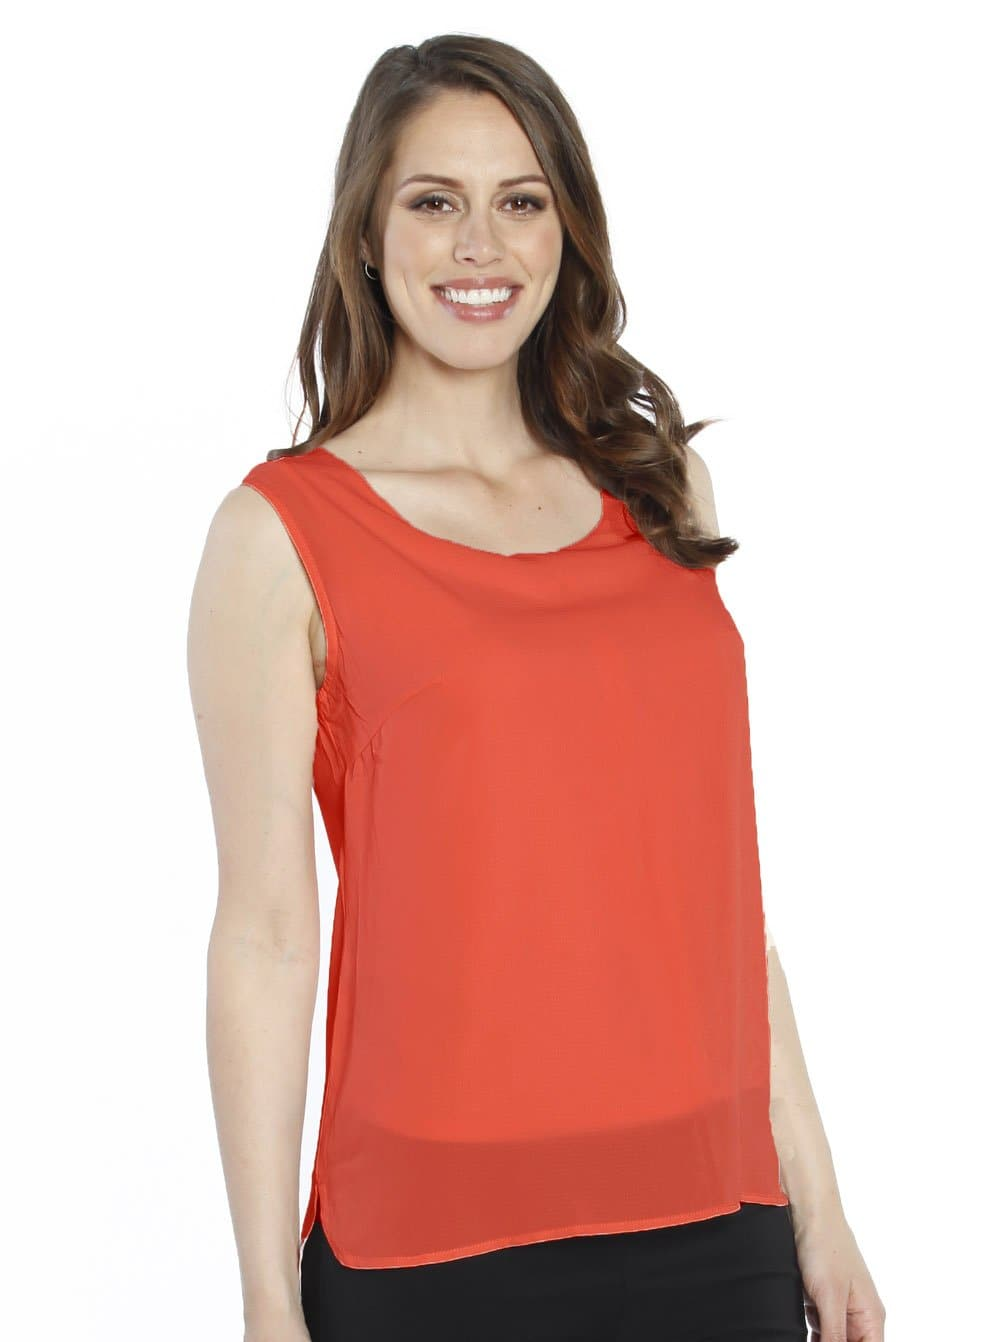 Breastfeeding LAYERED CHIFFON NURSING TOP - Tangarine - Angel Maternity - Maternity clothes - shop online